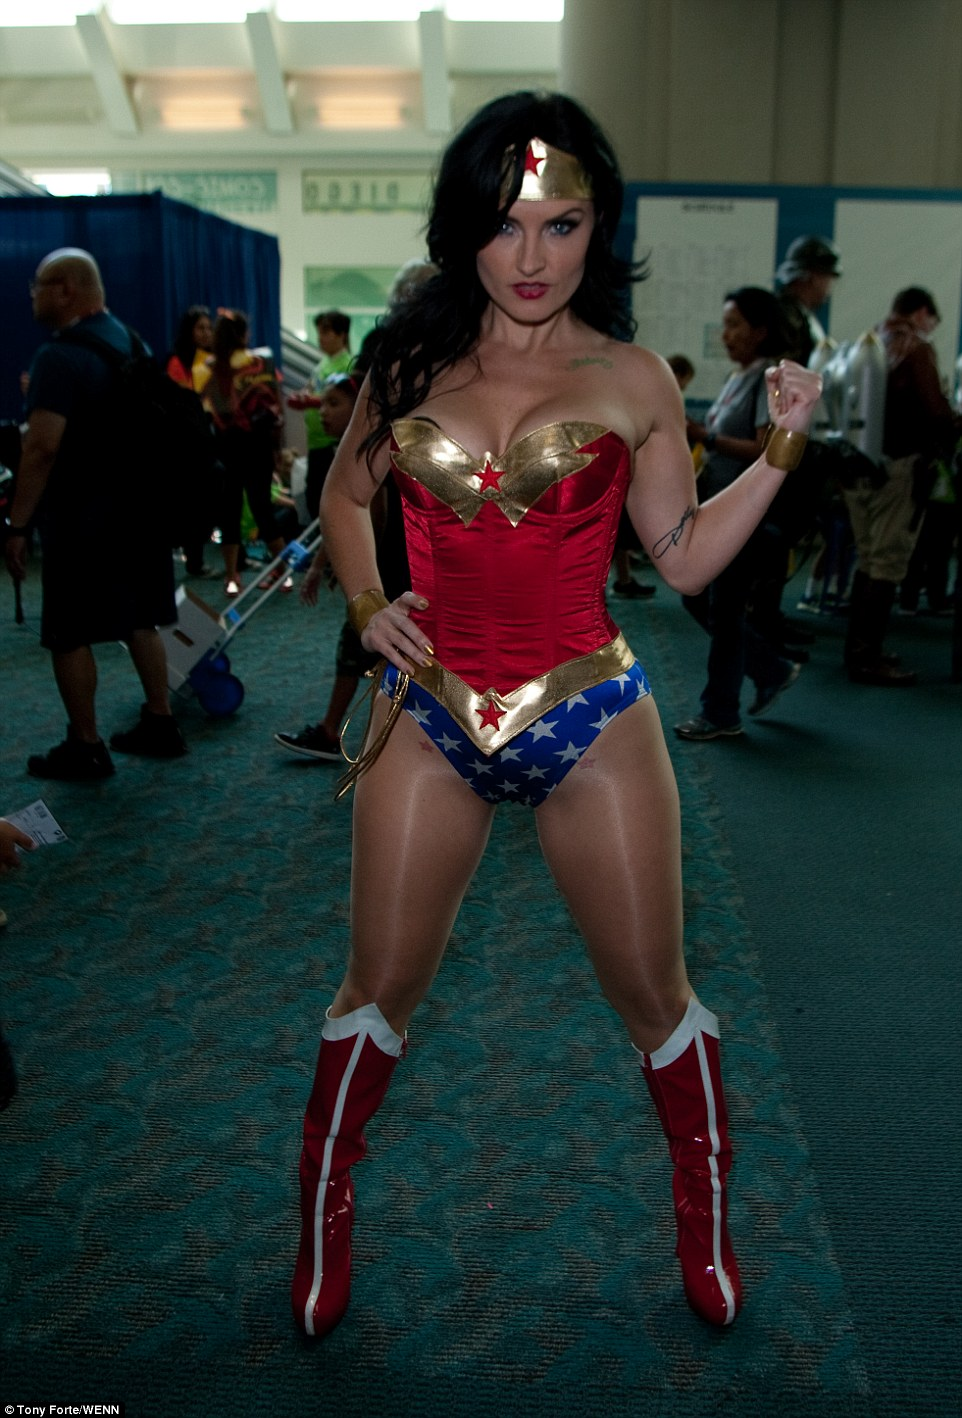 2A64E71200000578-3157610-Dressed_up_One_of_the_Wonder_Woman_who_attended_the_opening_day_-a-70_1436643026441